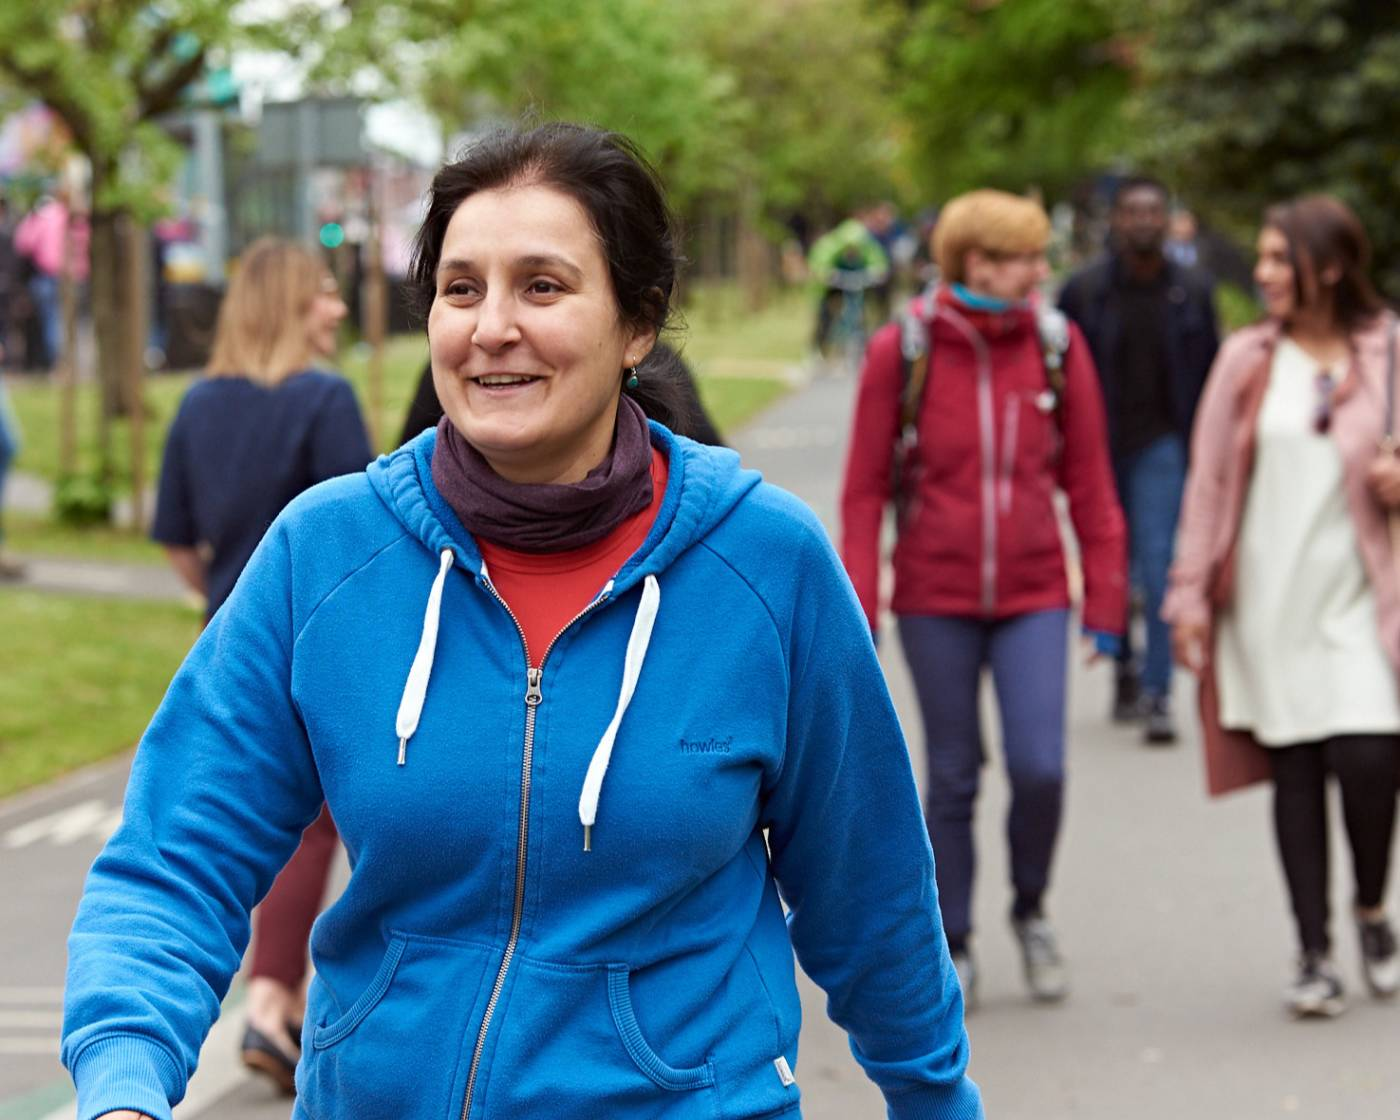 Image of a woman, walking and smiling in an open space in Greater Manchester